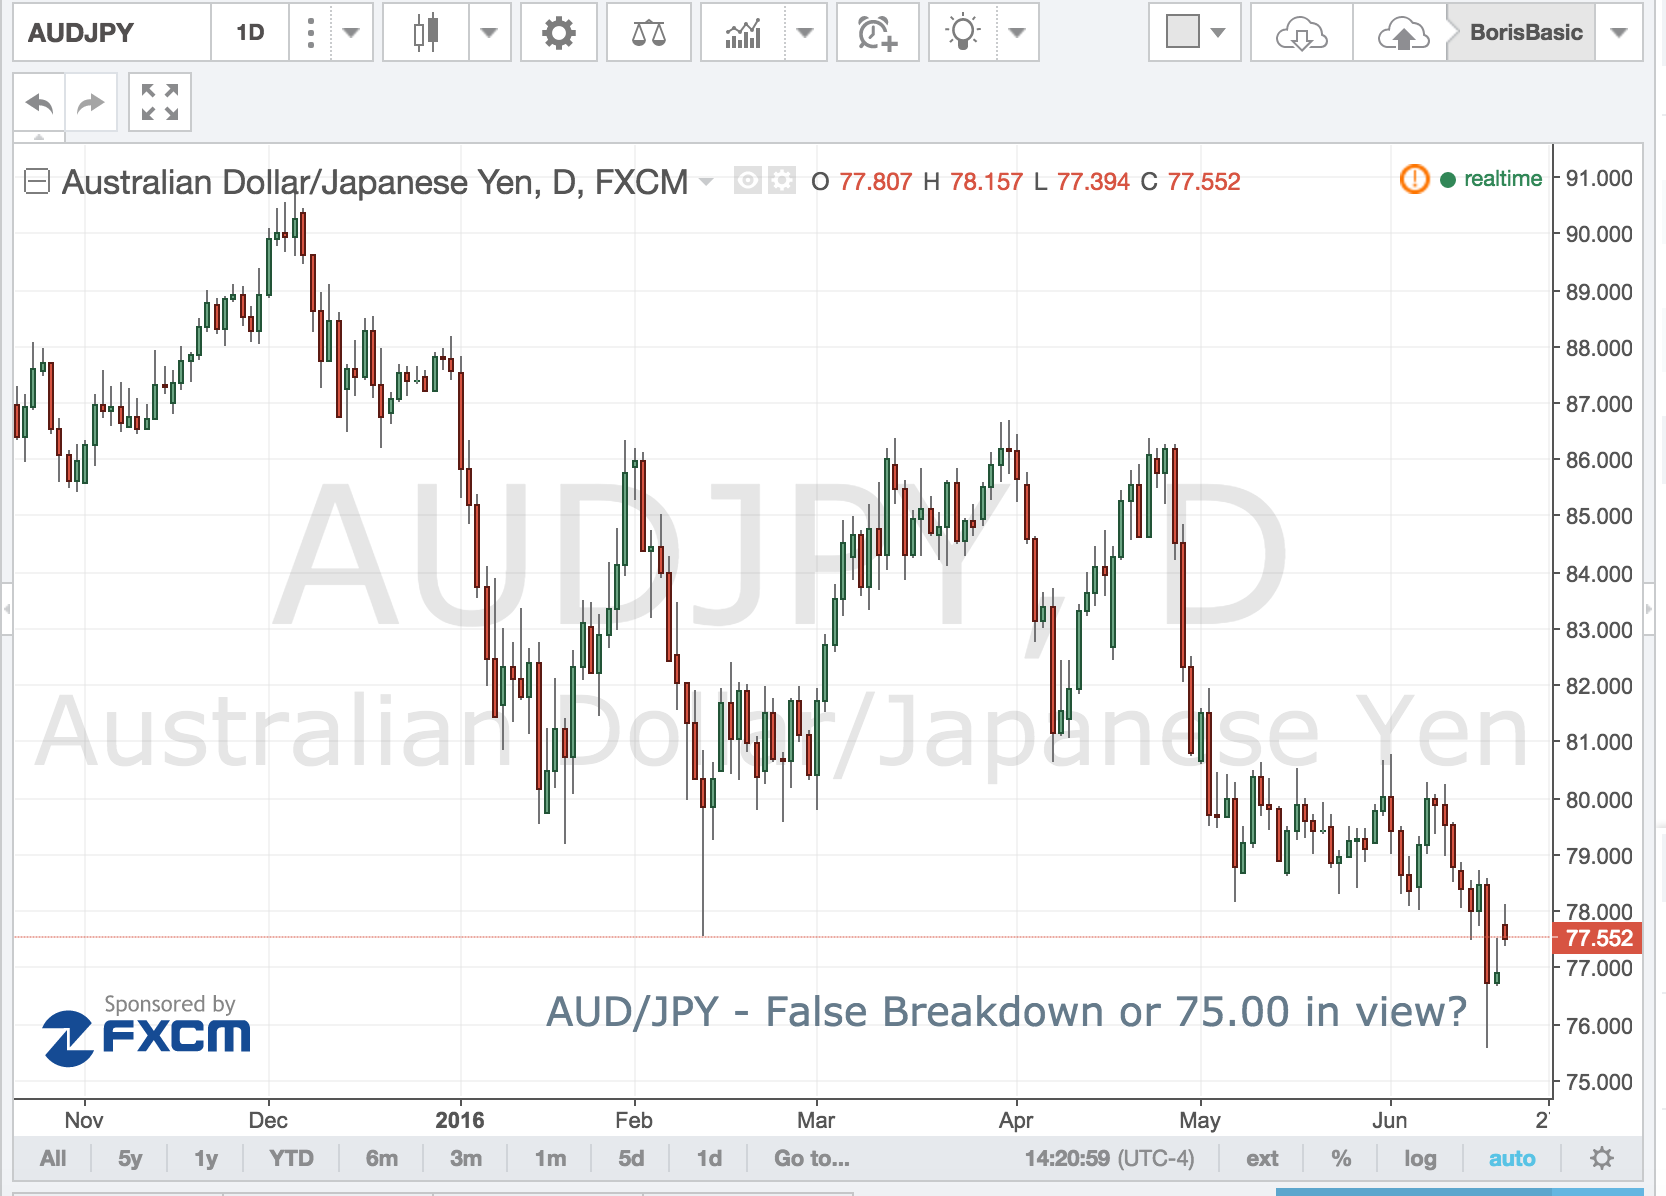 AUD/JPY – False Breakdown or 75.00 in View?